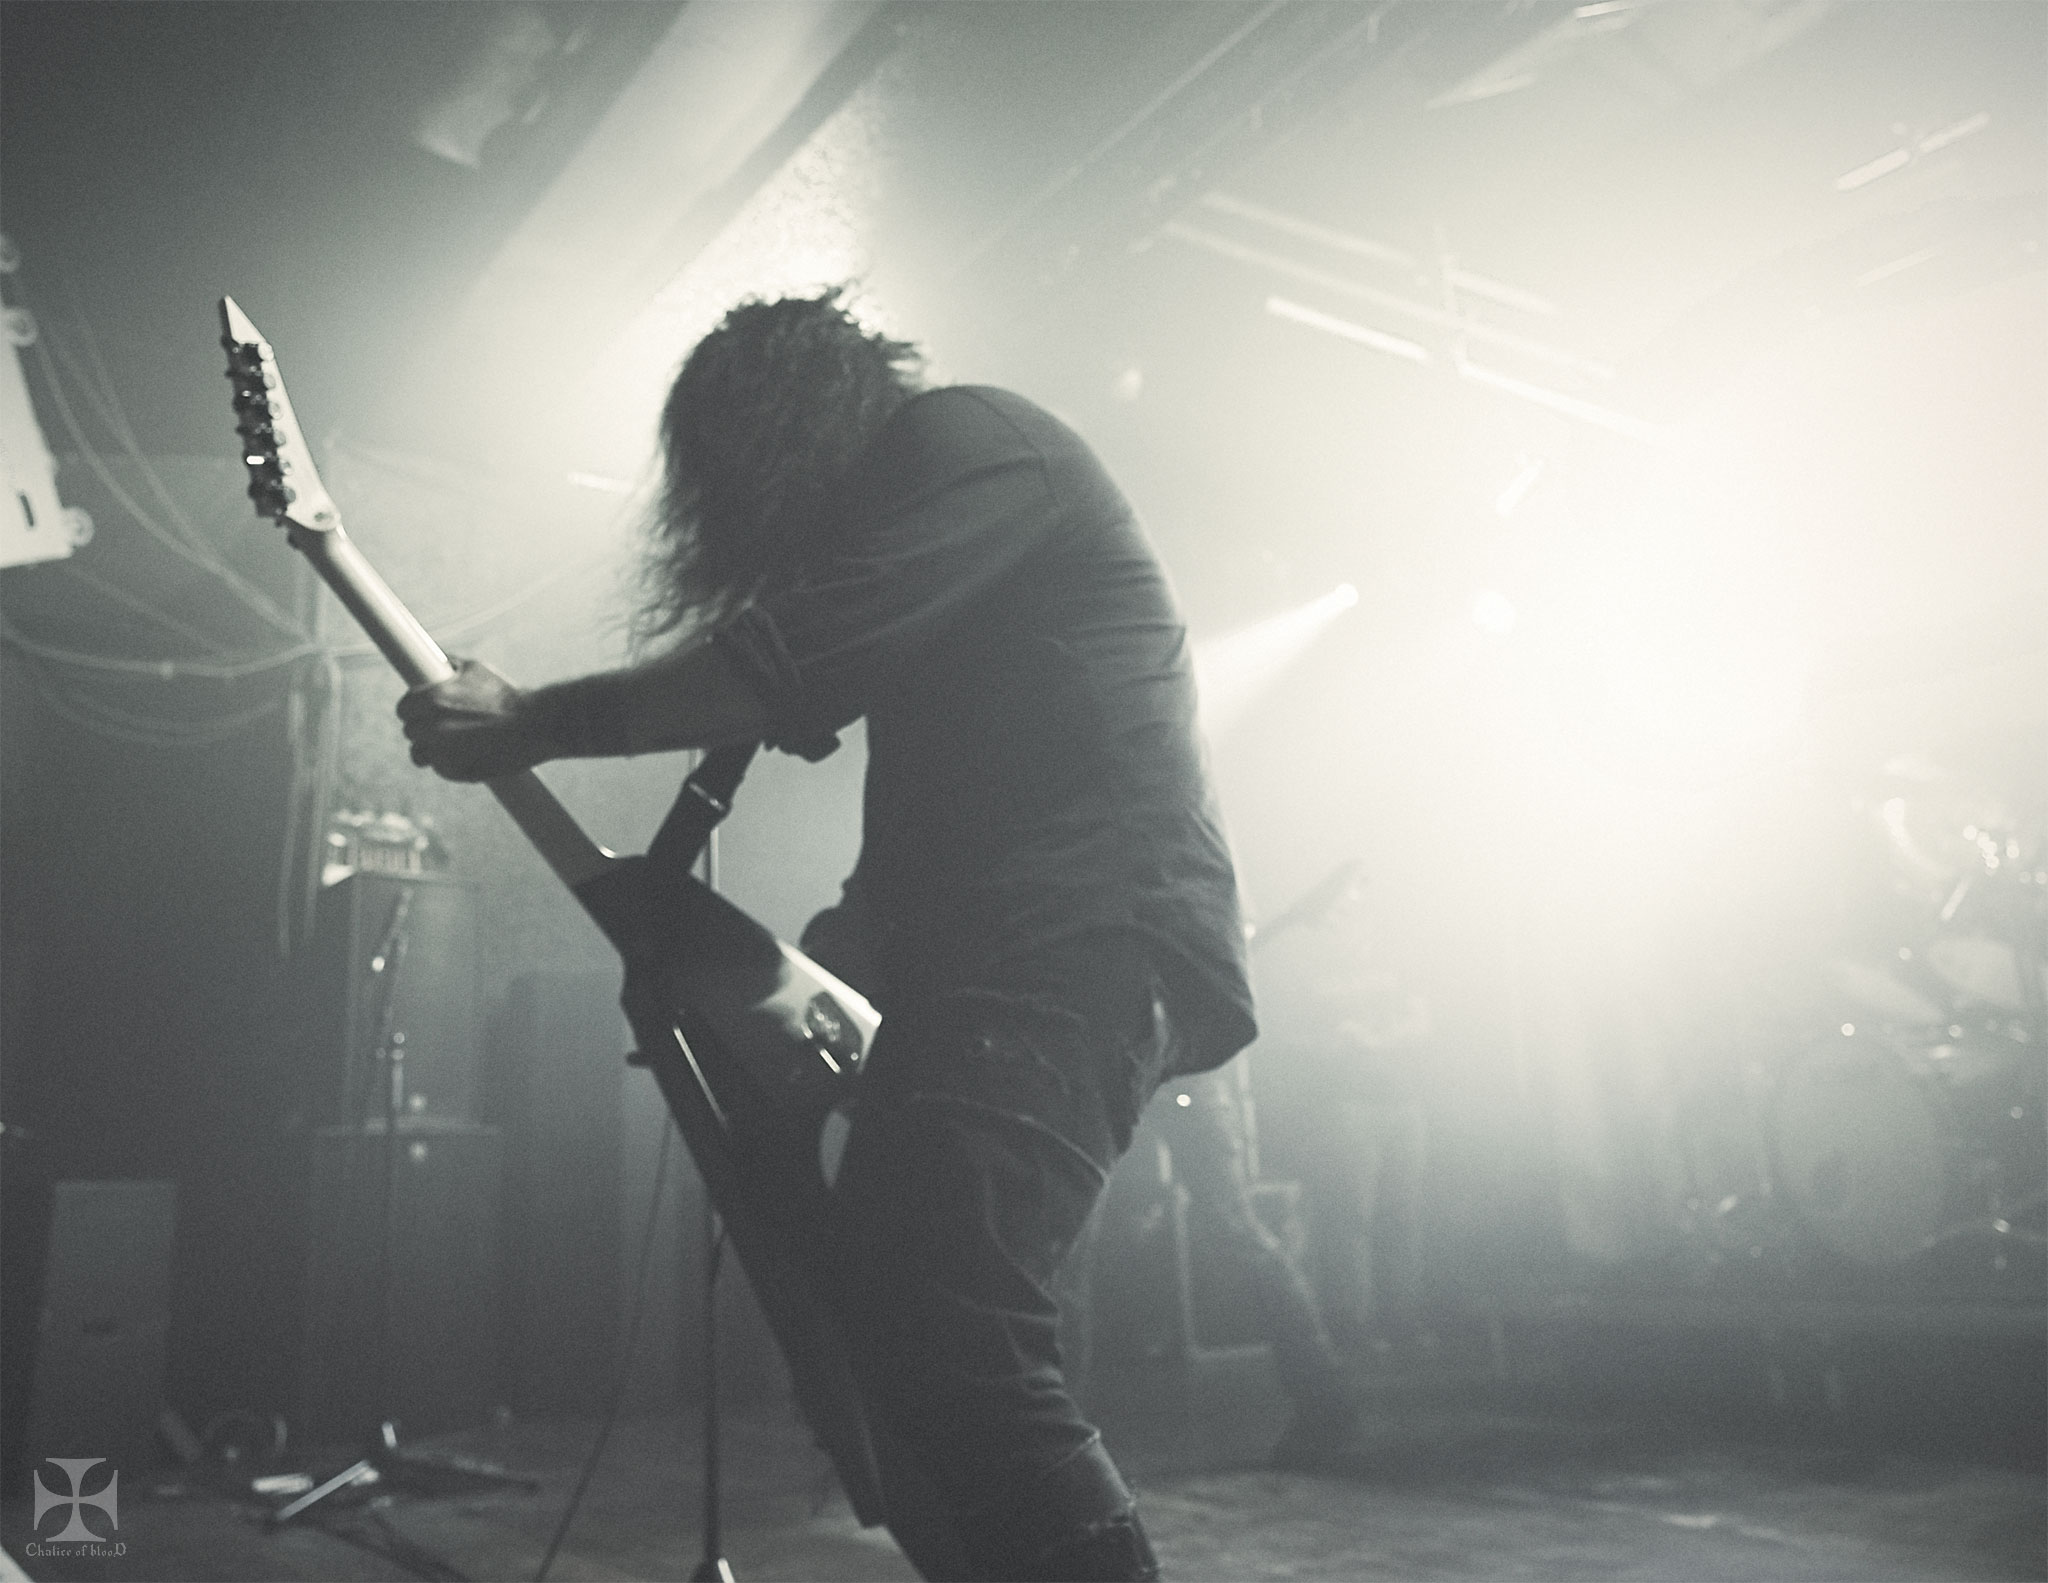 Kreator-0012-Exposure-watermarked.jpg